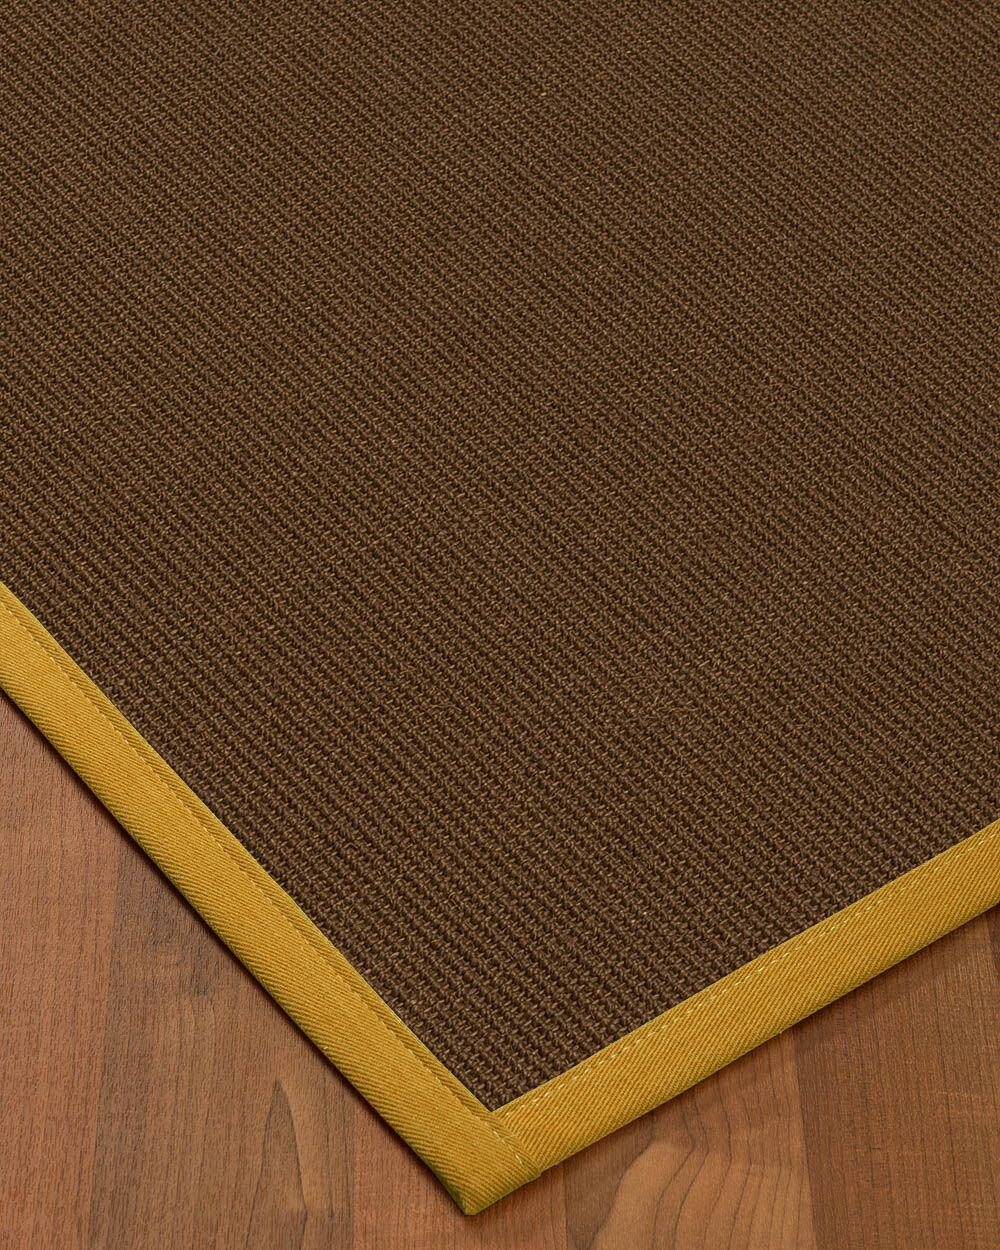 Heider Border Hand-Woven Brown/Tan Area Rug Rug Size: Rectangle 8' x 10', Rug Pad Included: Yes